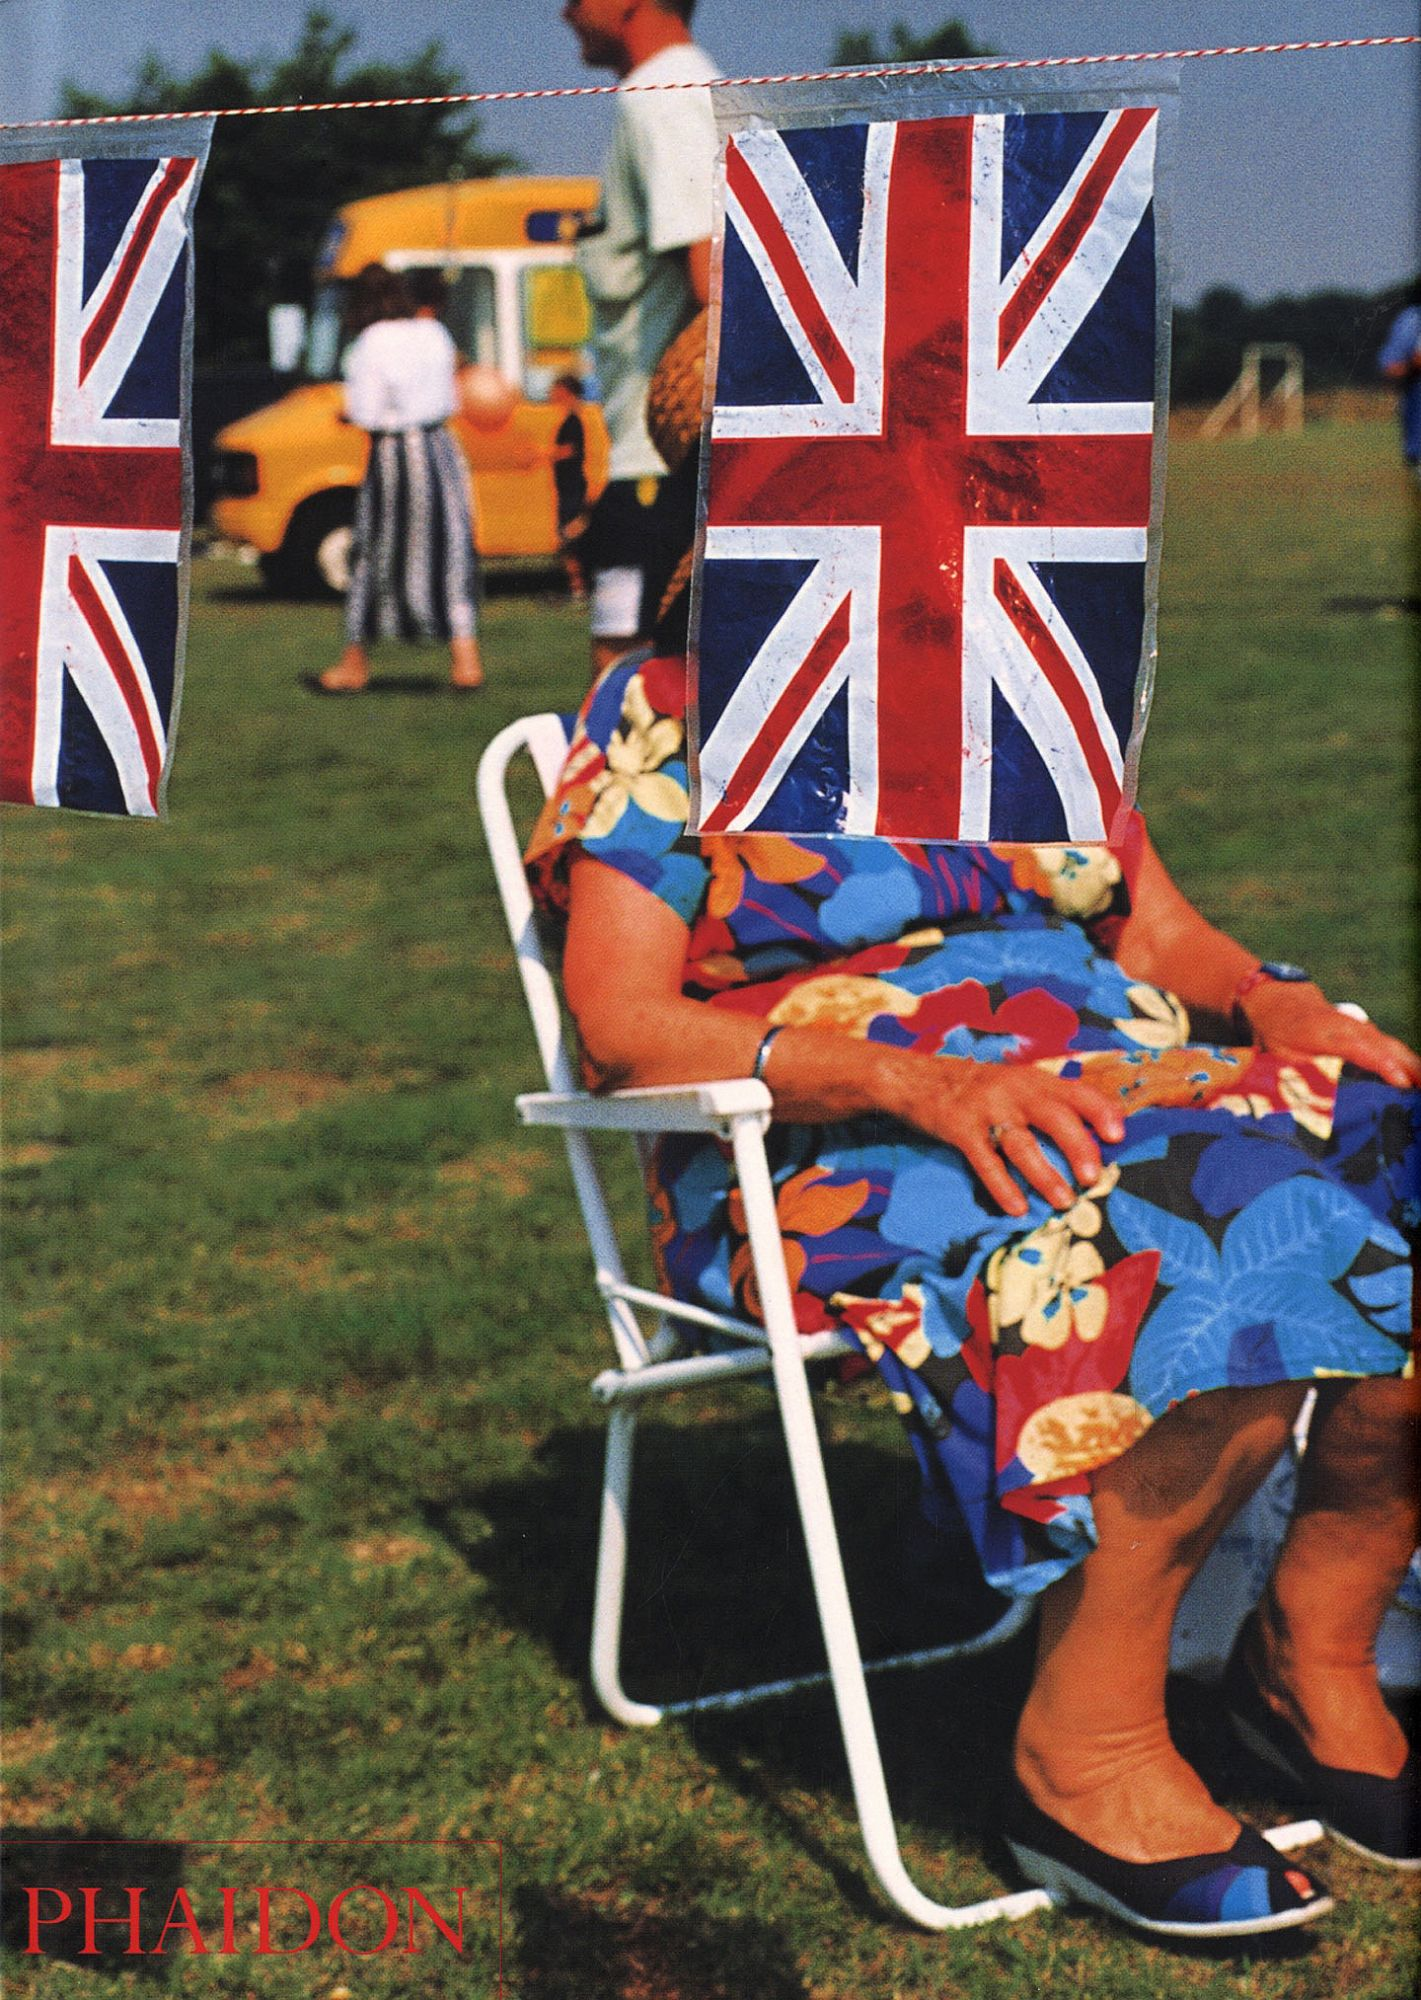 Martin Parr: Think of England (First Edition) [SIGNED]